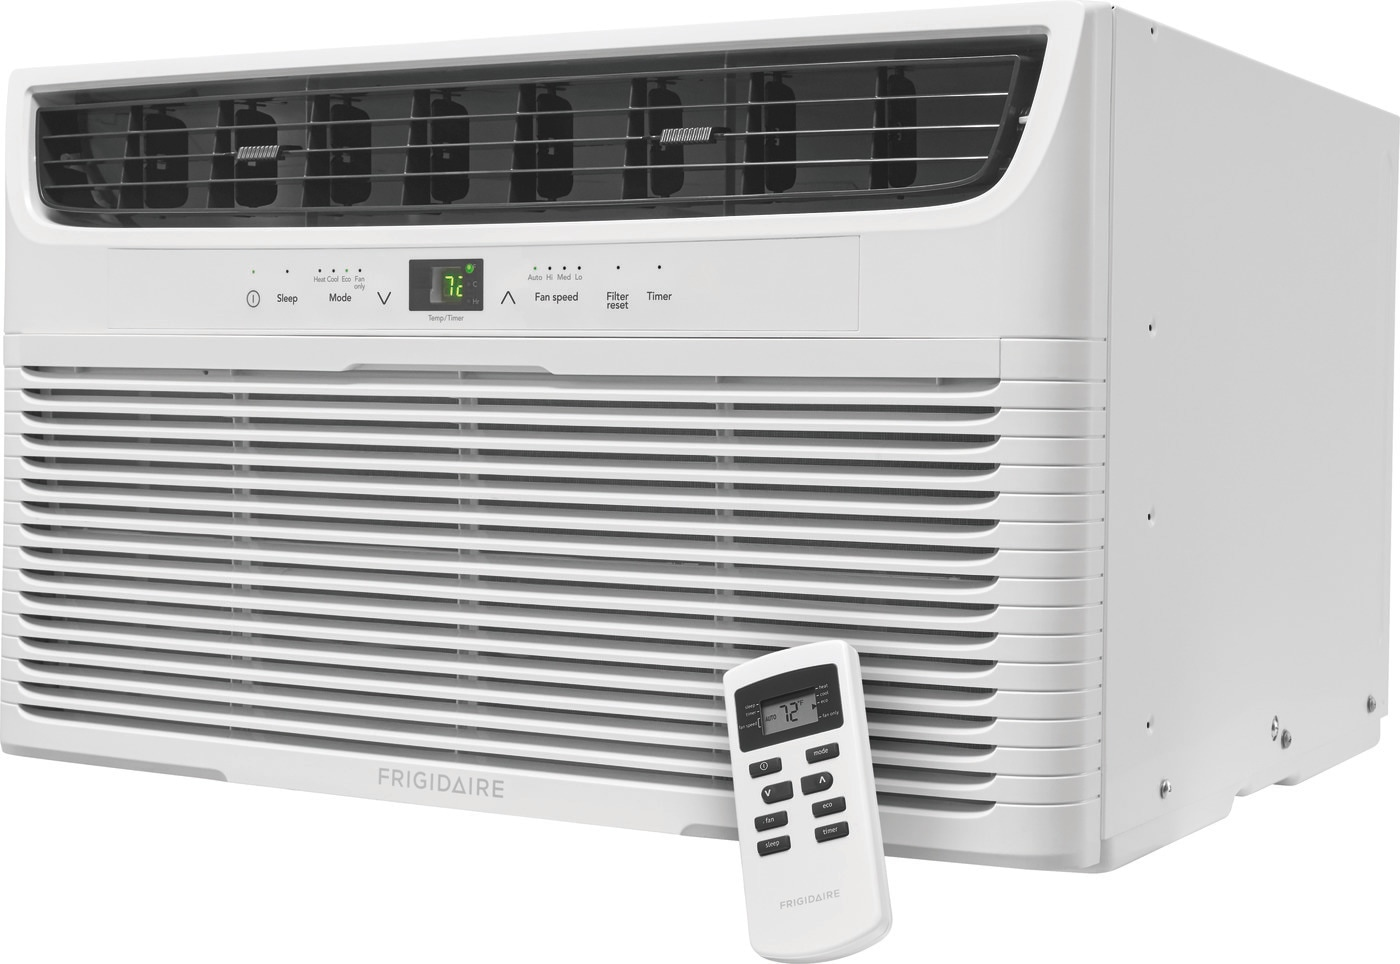 12,000 BTU Built-In Room Air Conditioner with Supplemental Heat- 230V/60Hz White FFTH1222U2